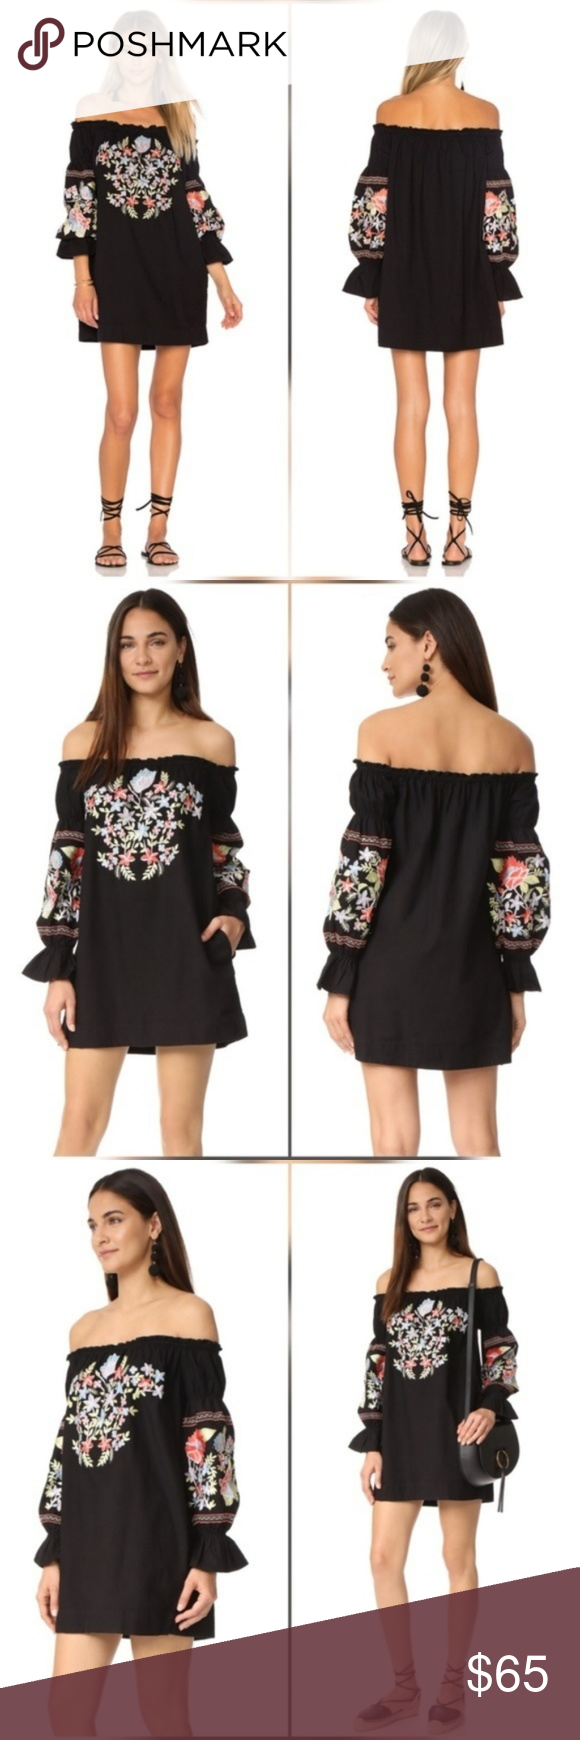 "Free People Fleur De Jour Off the Shoulder Dress New with tags. Perfect condition. No trades. Approximate measurements: Chest flat across 20"" Length 28.5"" Sleeve 23"" Has pockets. Free People Dresses"